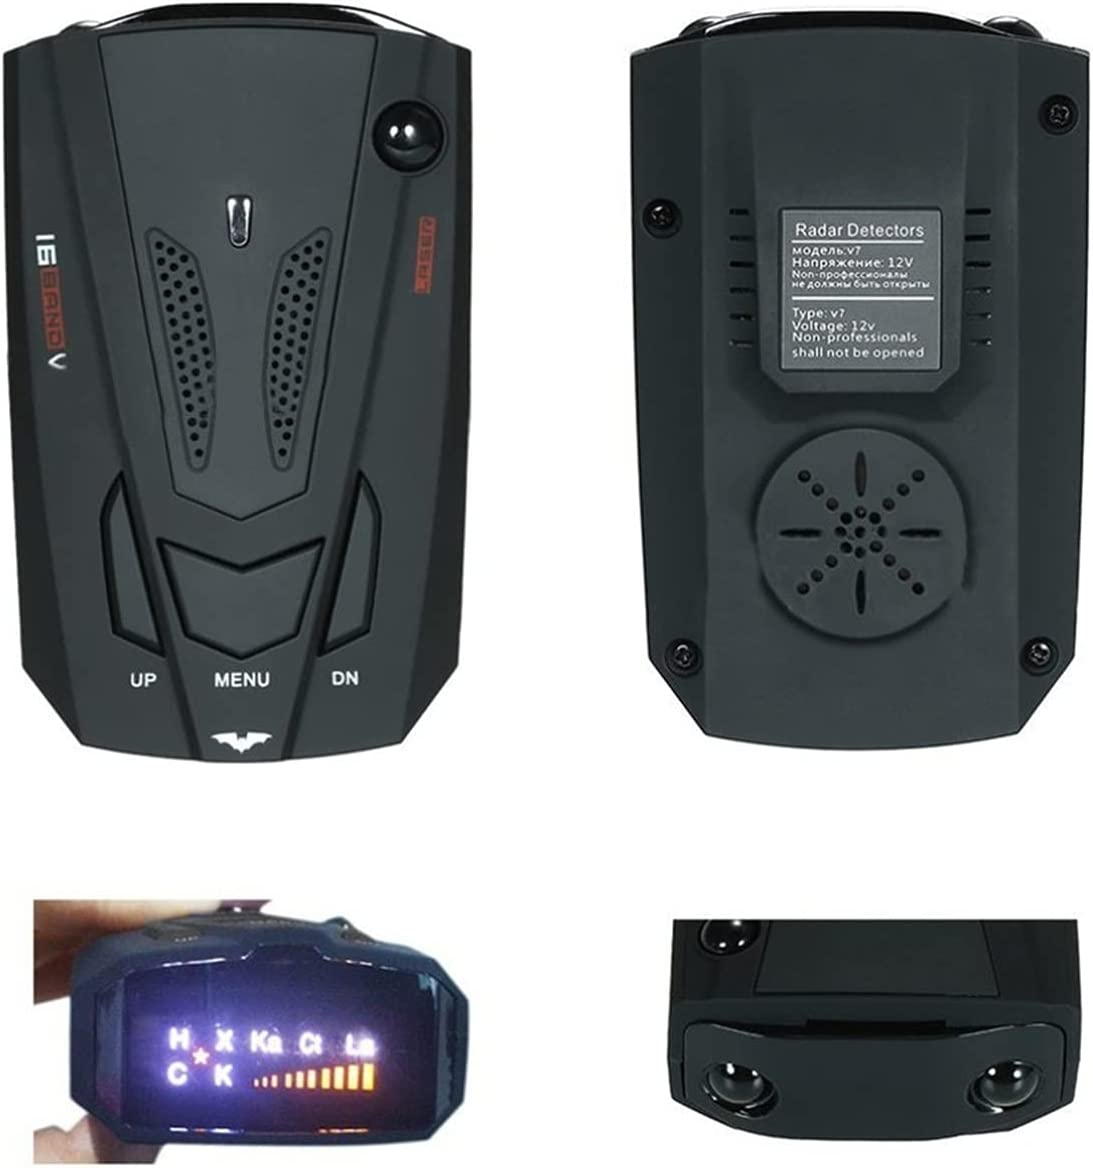 YXZQ Handheld GPS NEW Detector Deluxe Radar D LED Display with 360